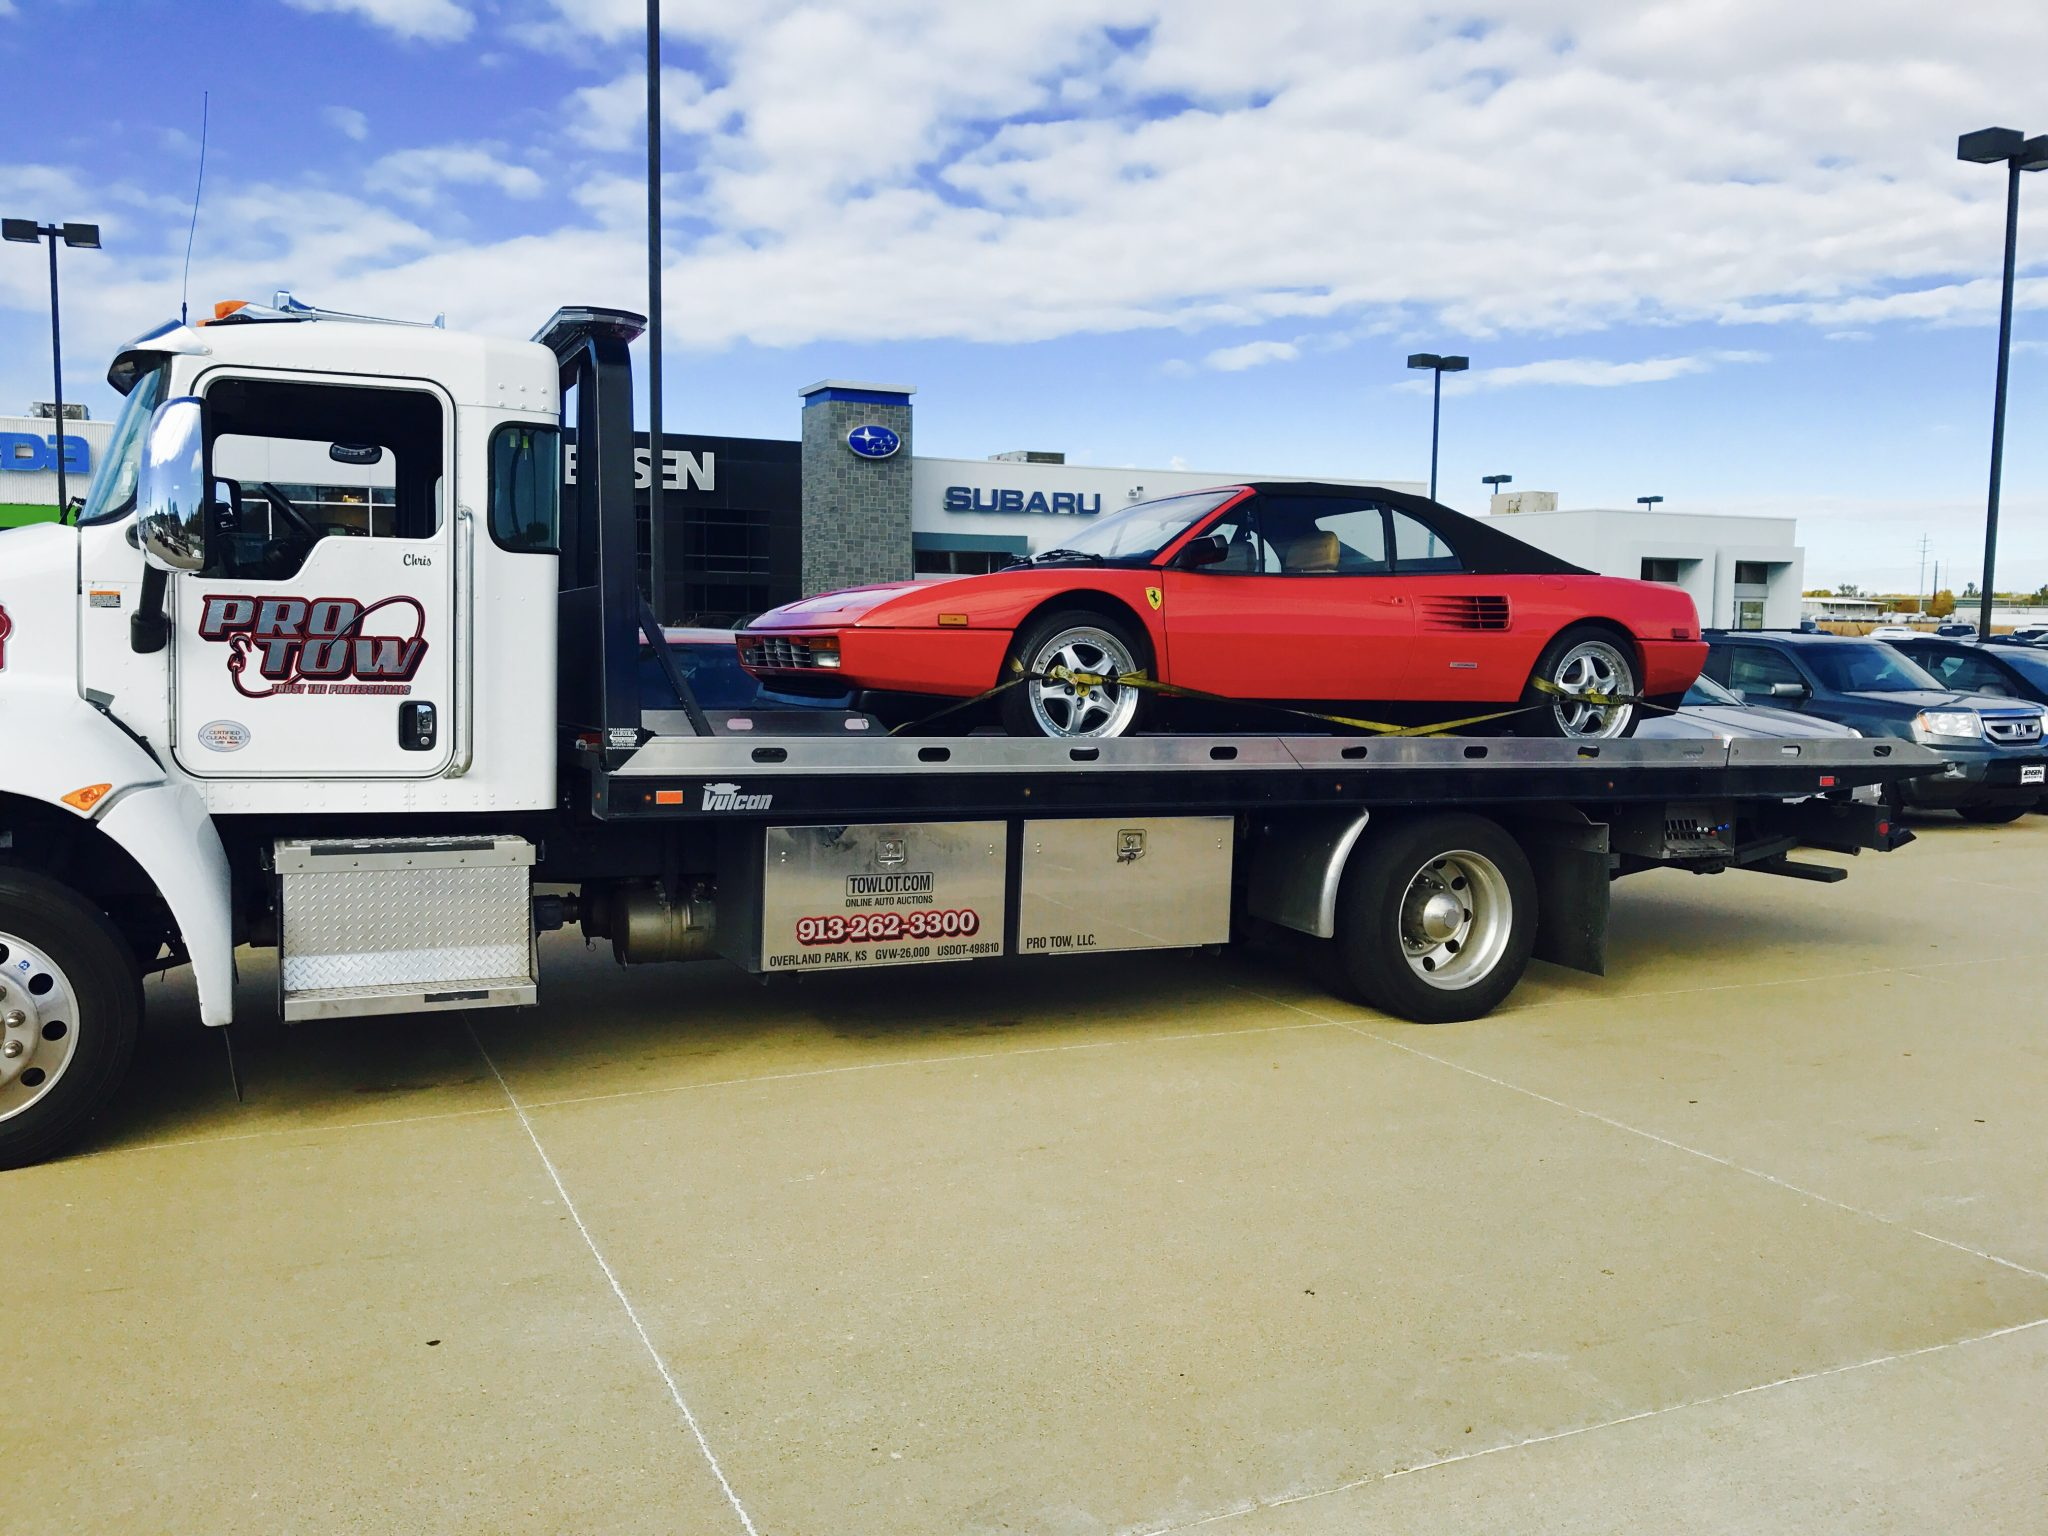 Pro Tow, Llc With Red Ferrari On Flatbed Tow Truck